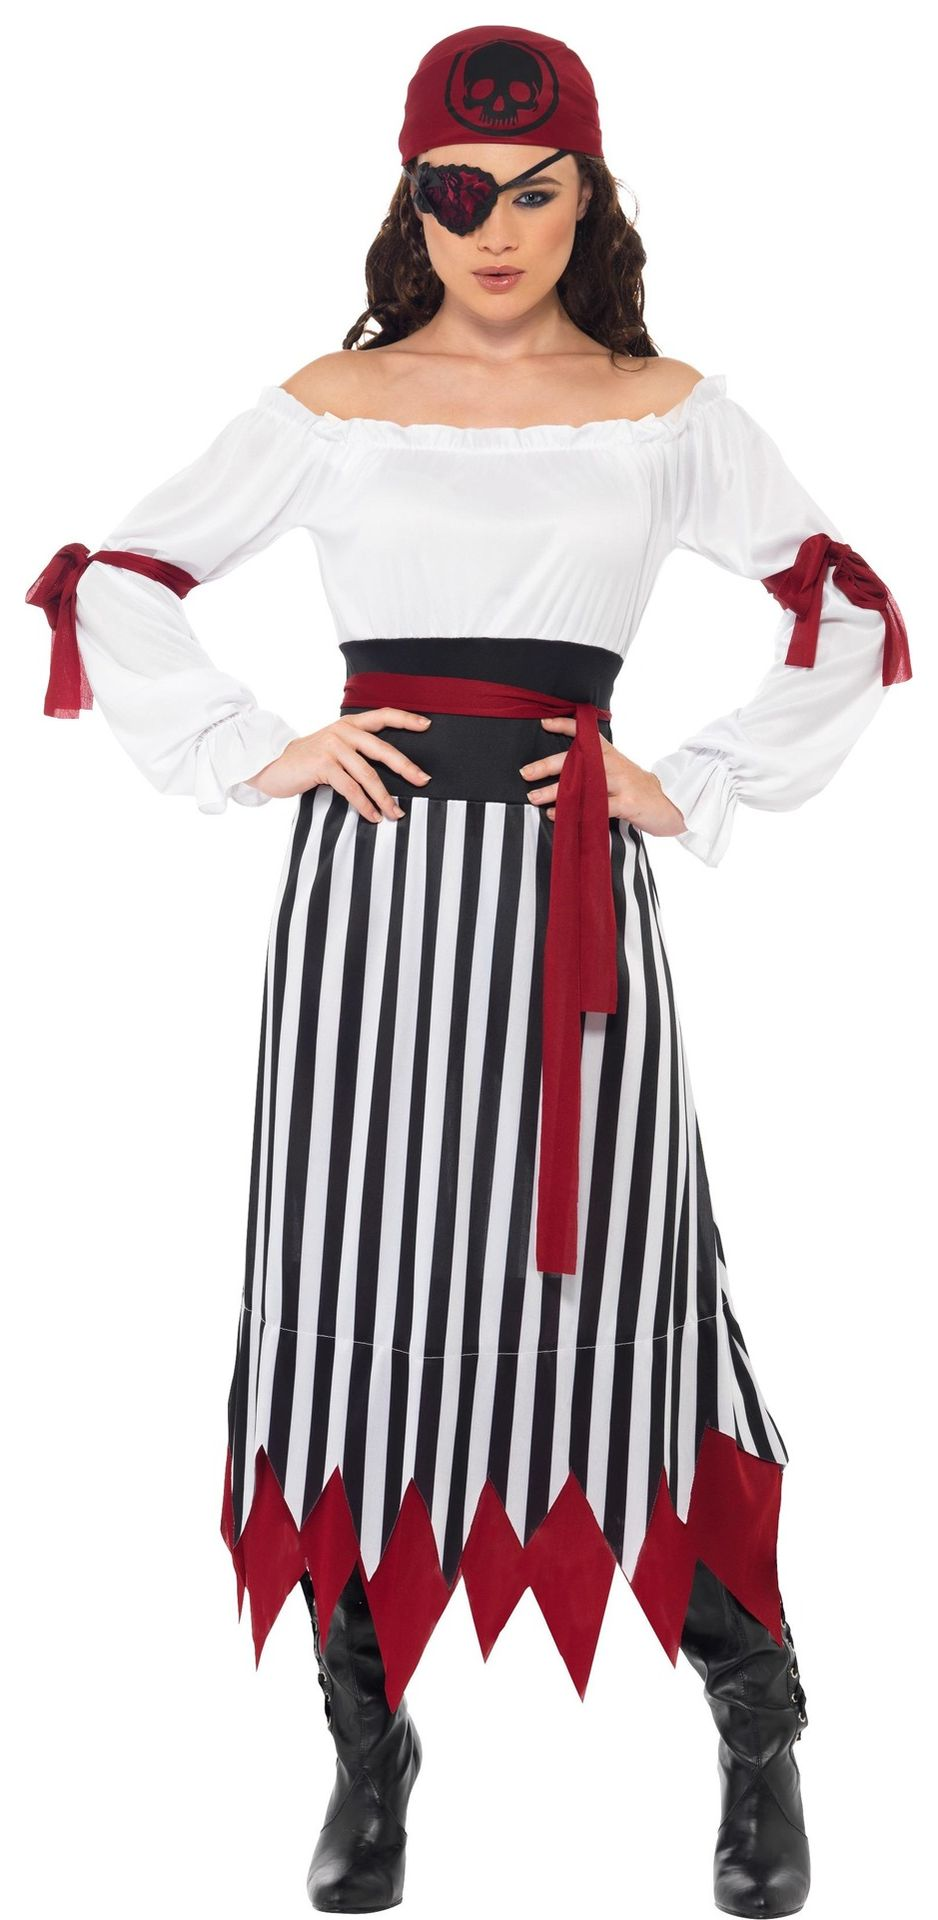 Dames outfit piraat